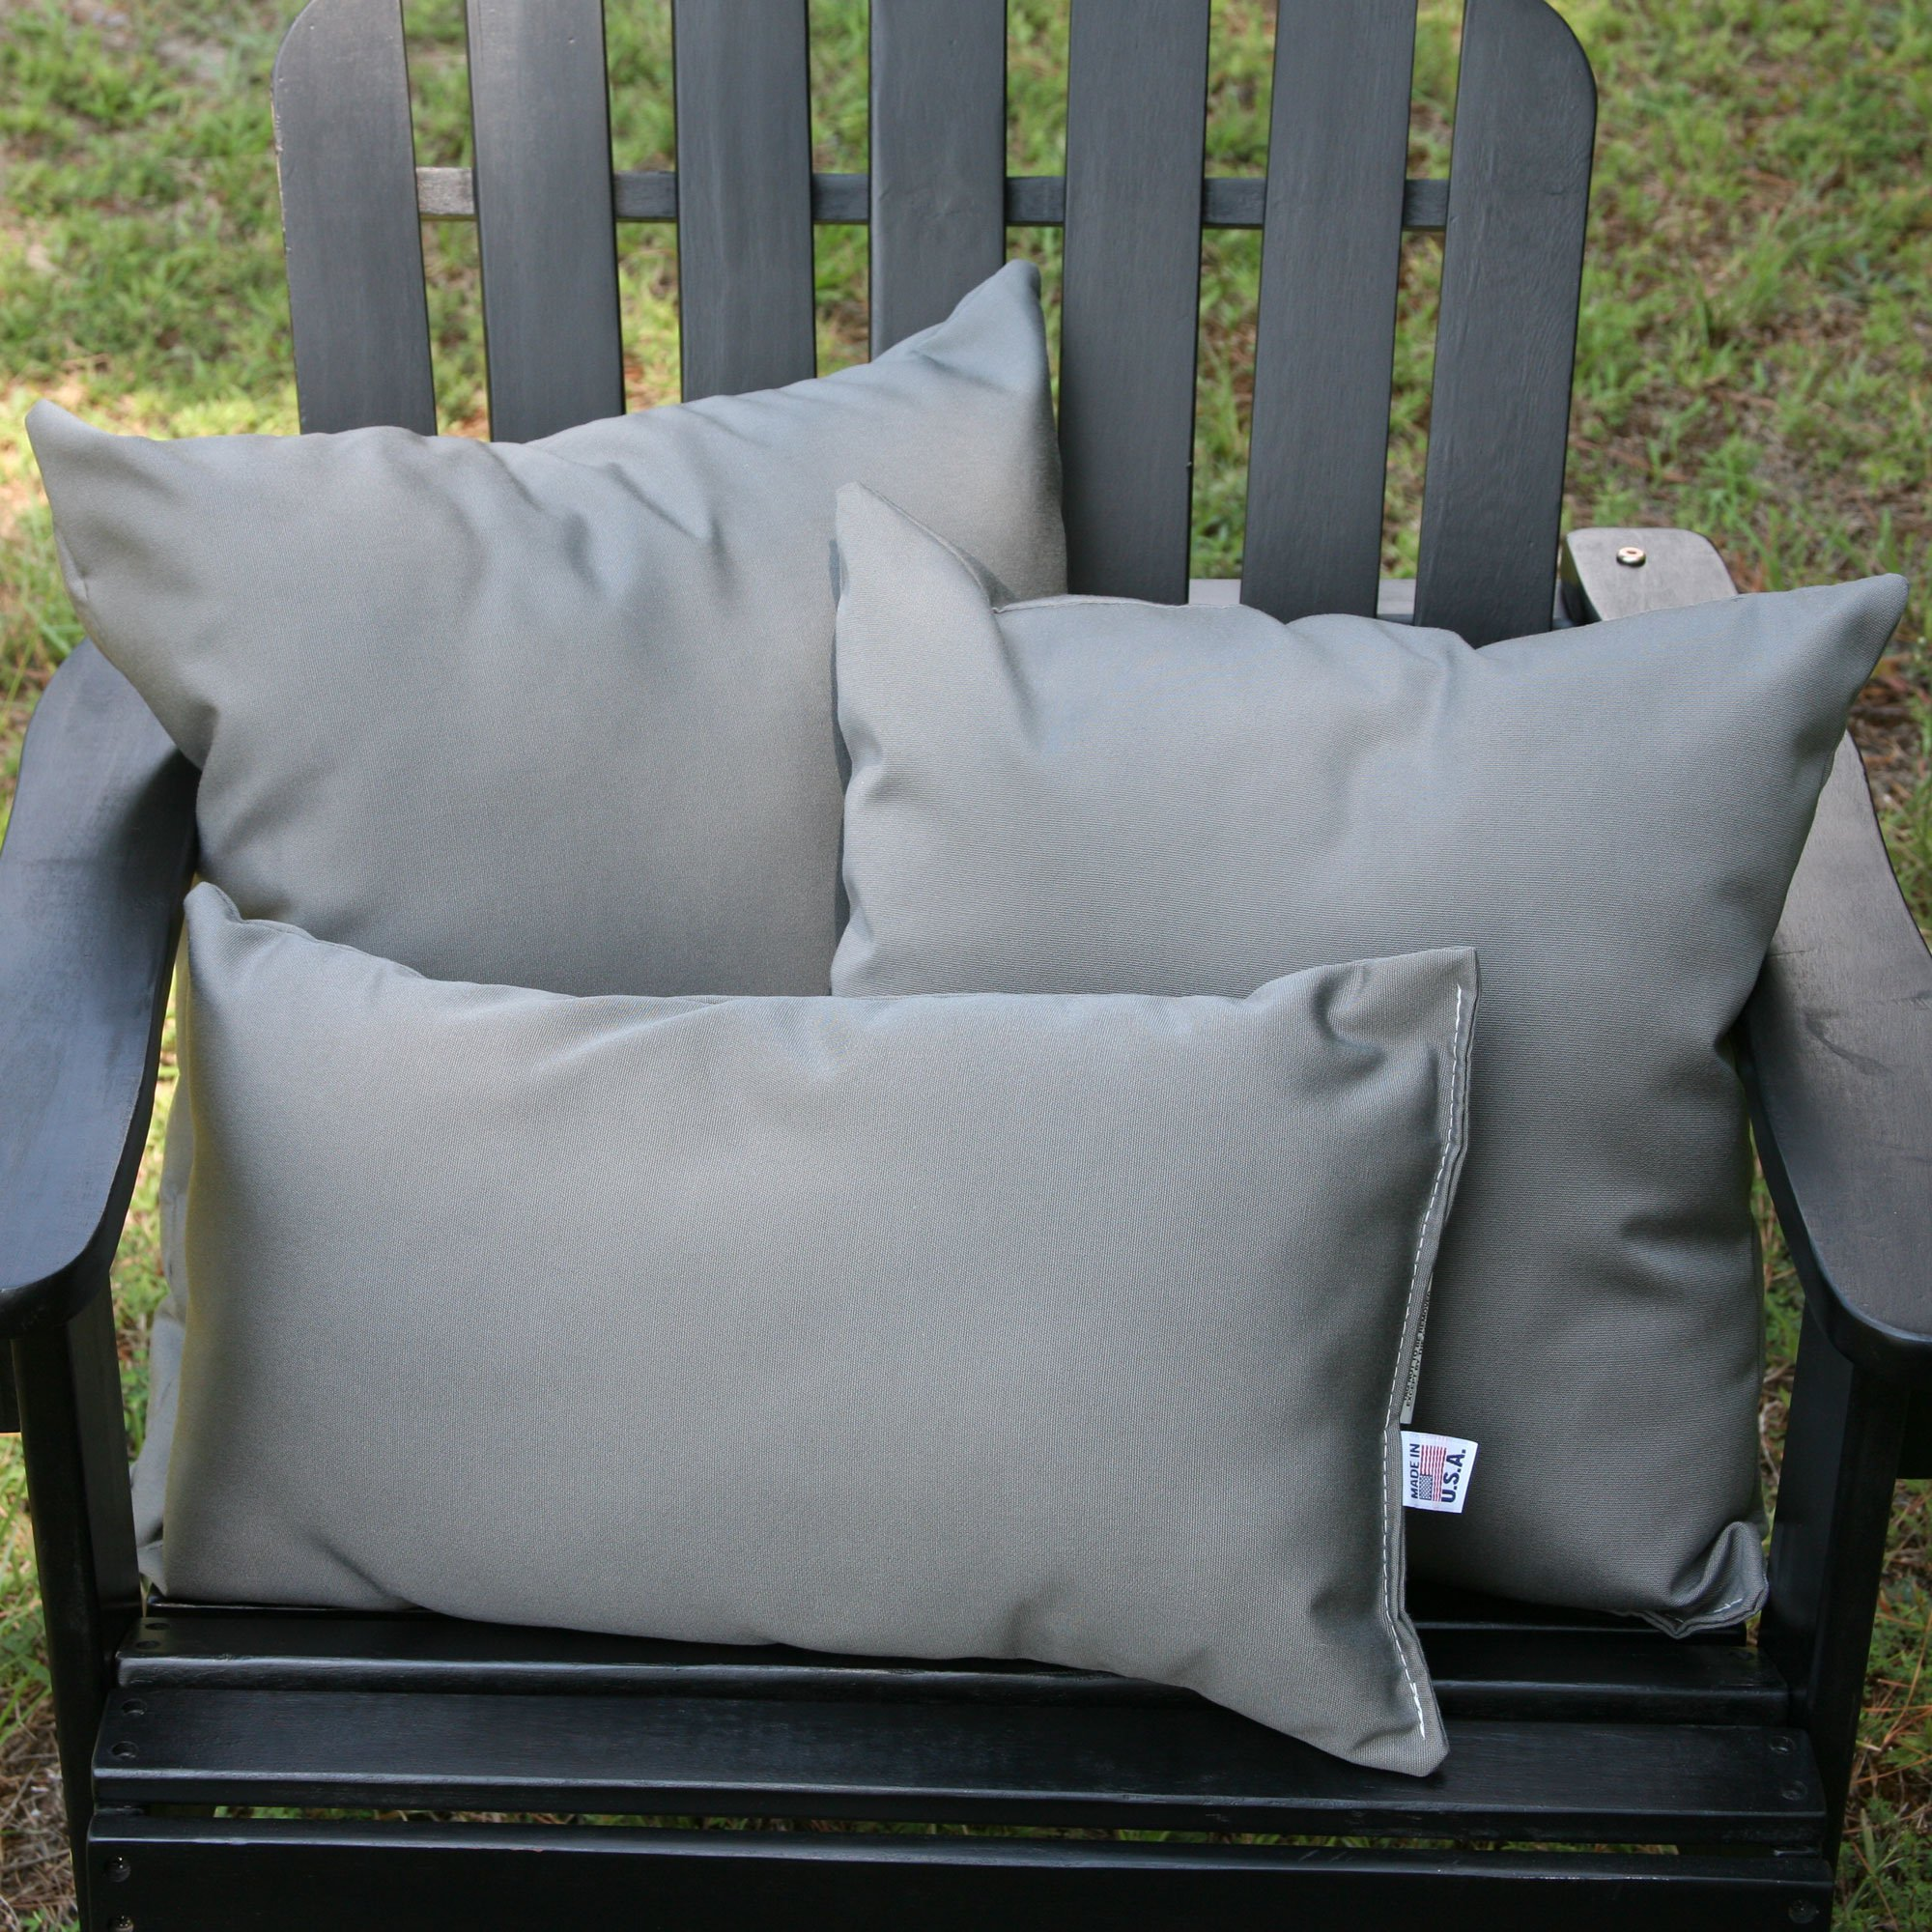 Charming outdoor throw pillows for furniture accessories with cheap outdoor throw pillows